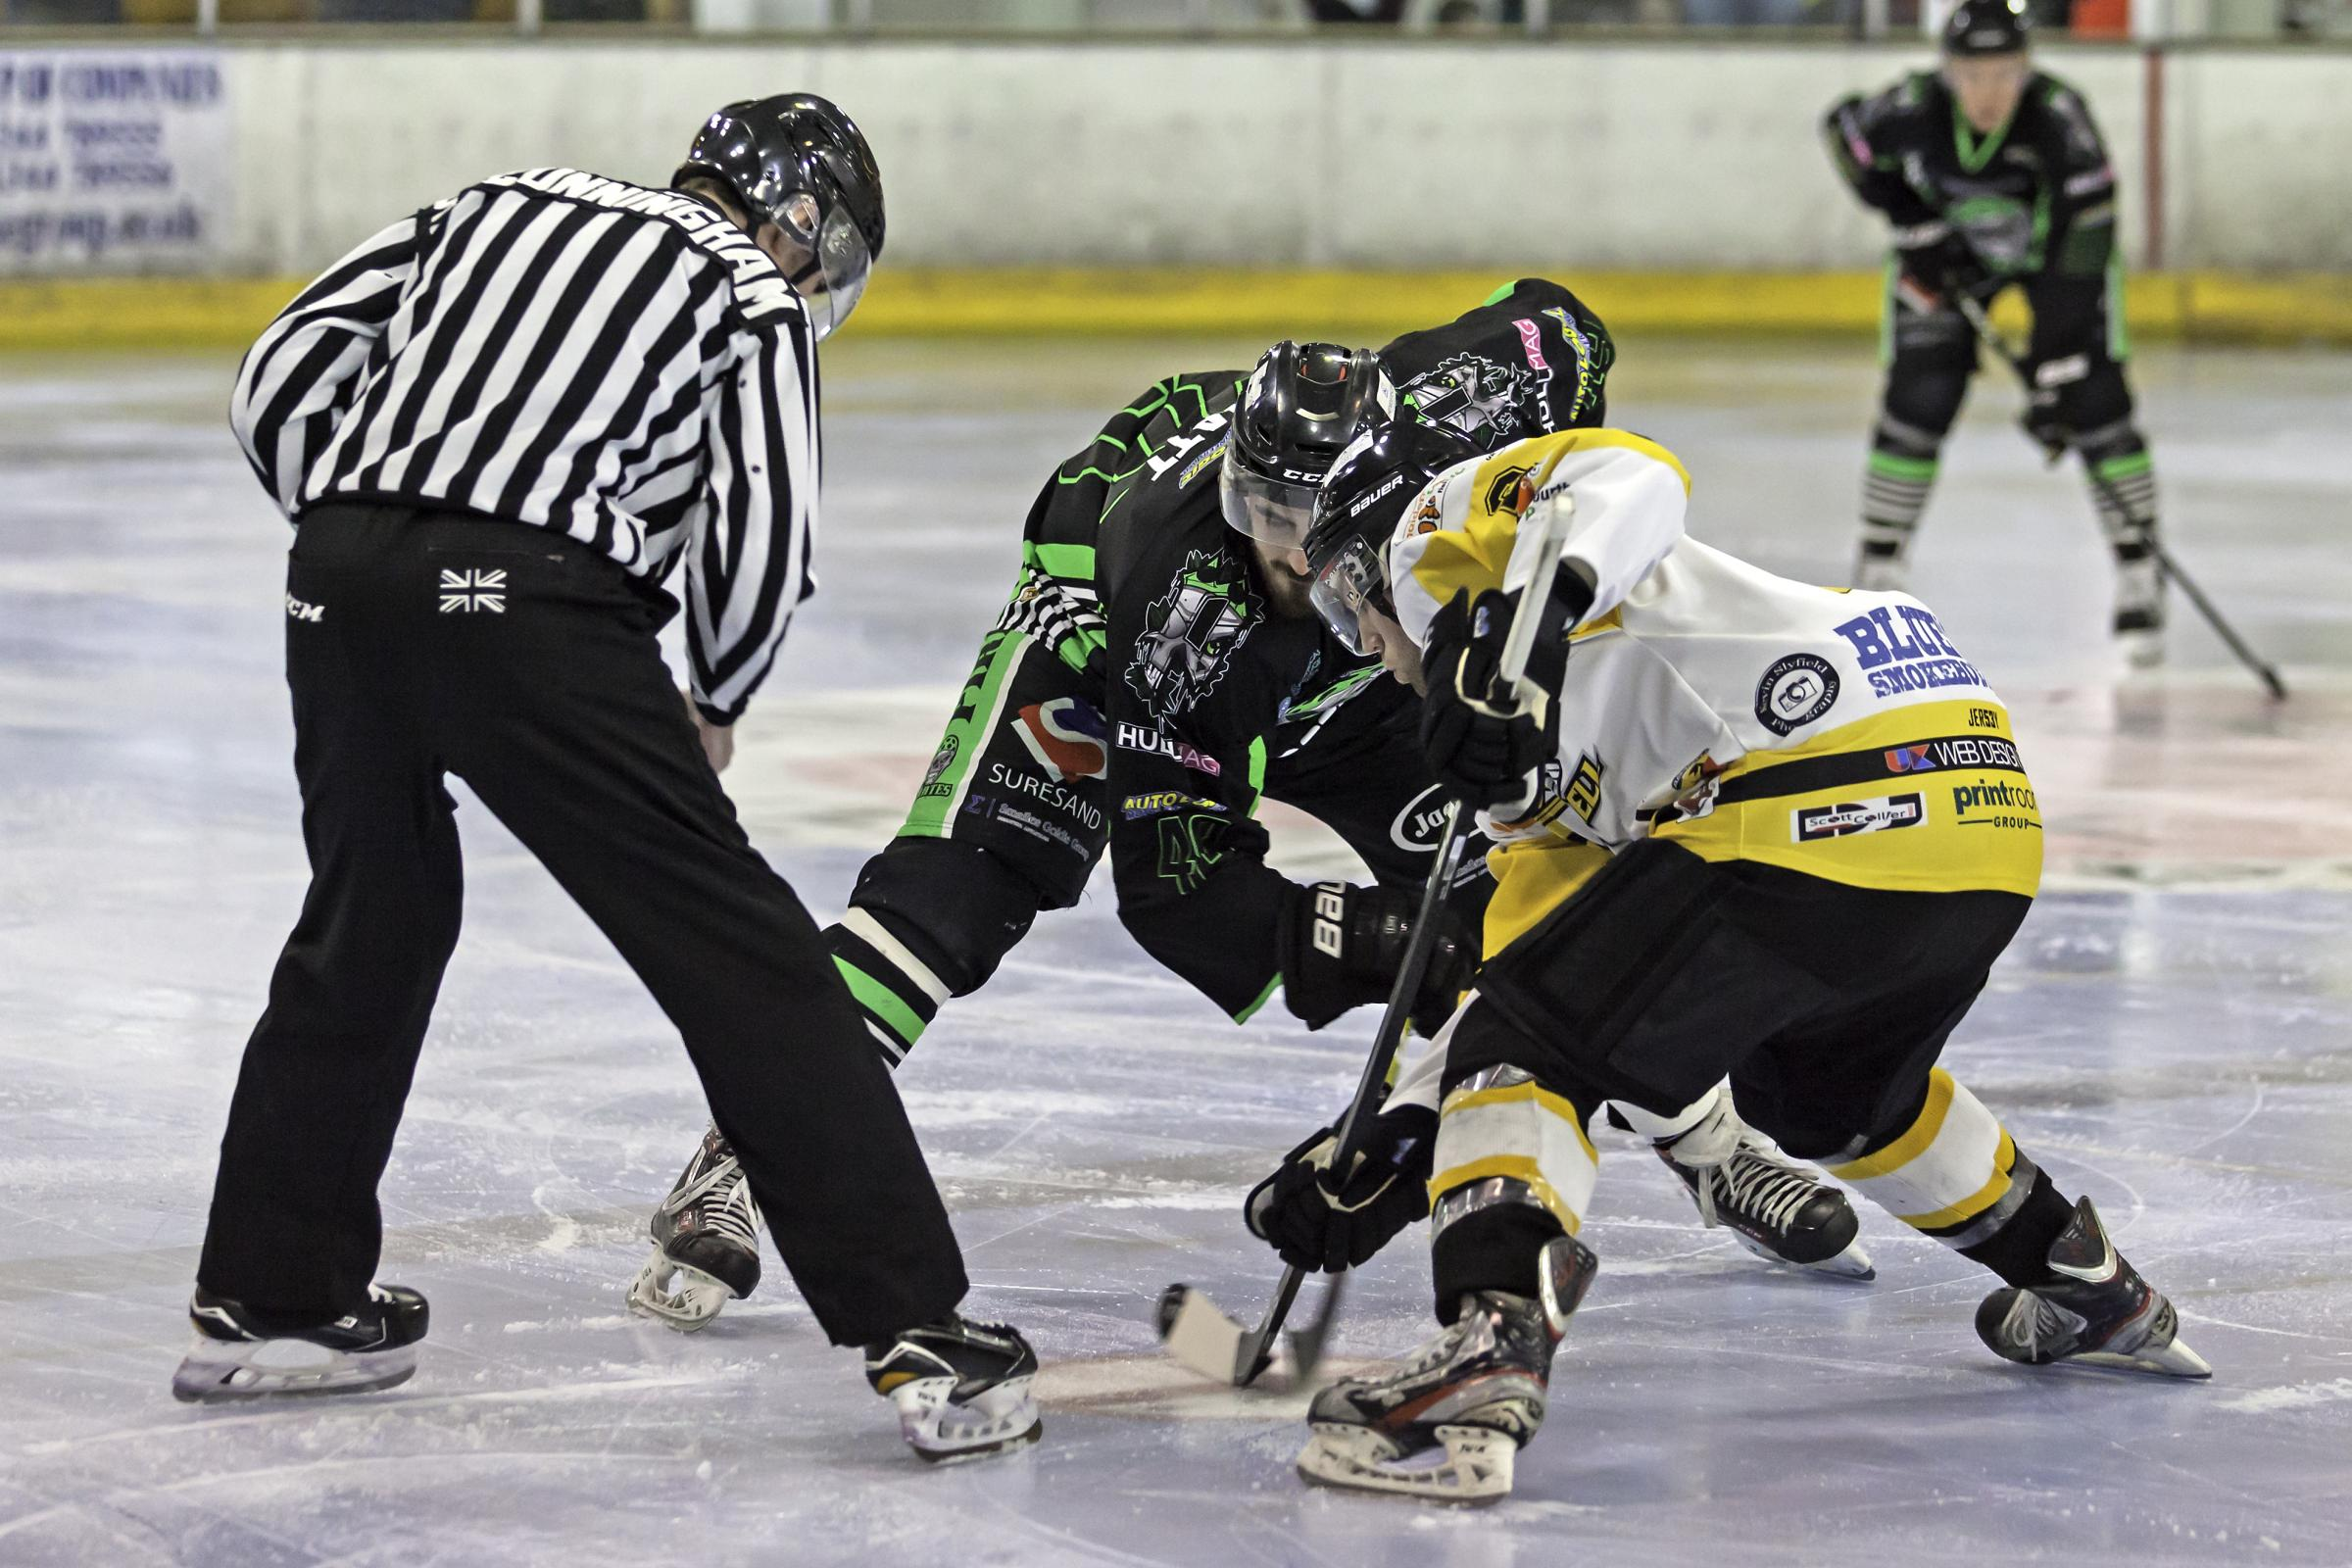 Action from Bracknell Bees' 3-1 defeat to Hull Pirates   Pictures by Kevin Slyfield Photography - www.flickr.com/photos/k_sly